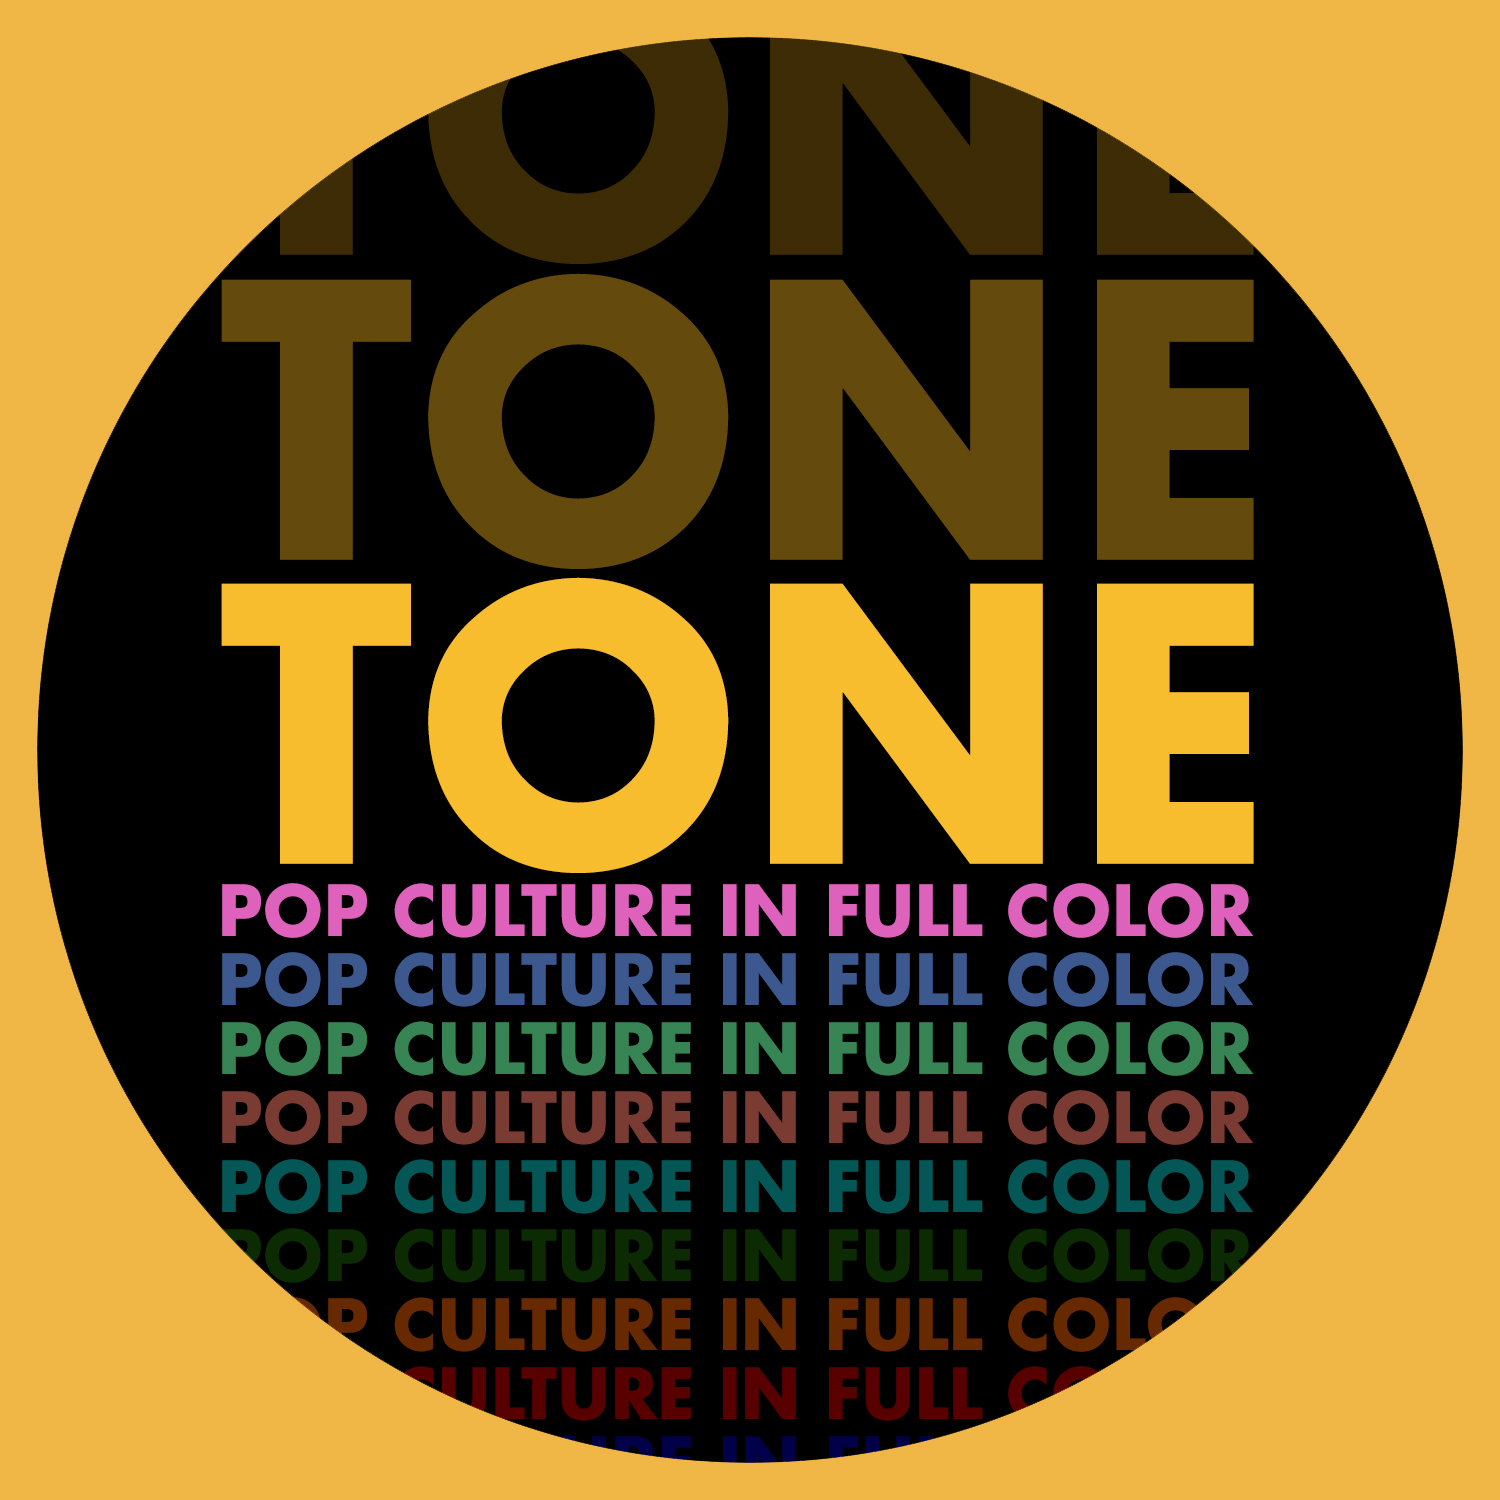 Pop Culture in Full Color: The Tone Podcast